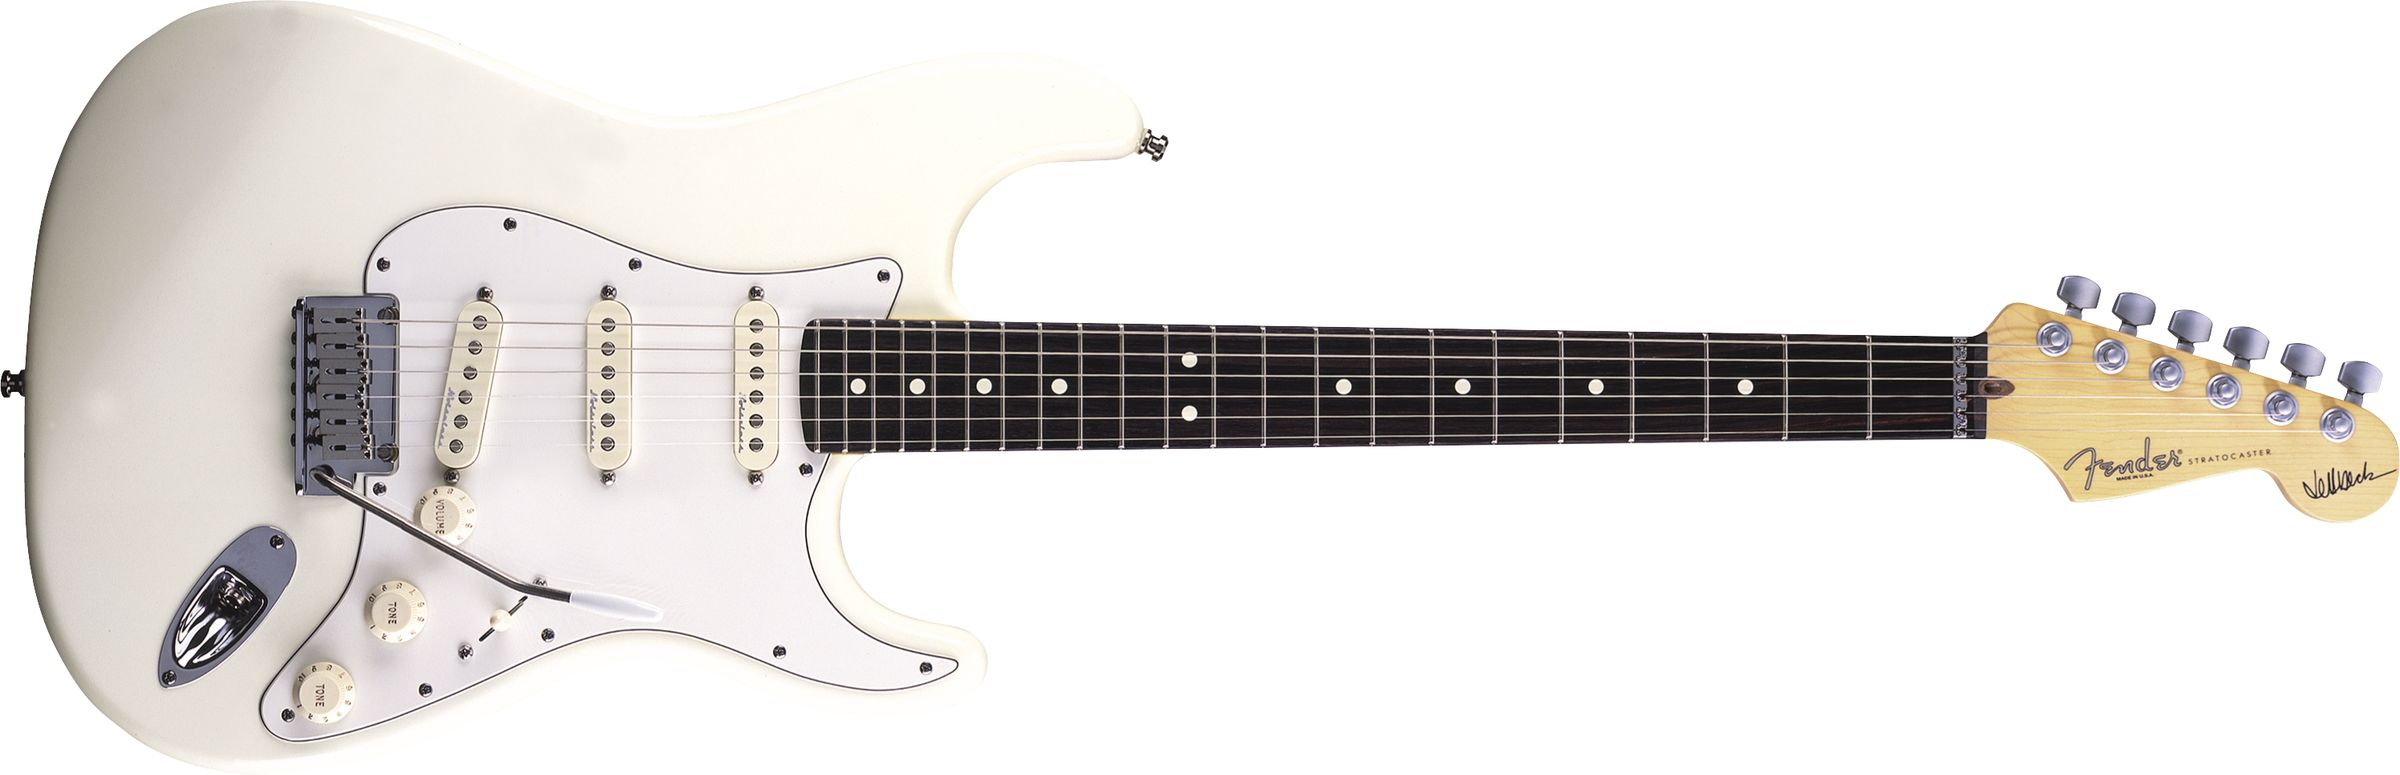 GUITARRA FENDER SIG SERIES JEFF BECK 011-9600-805 OLYMPIC WHITE